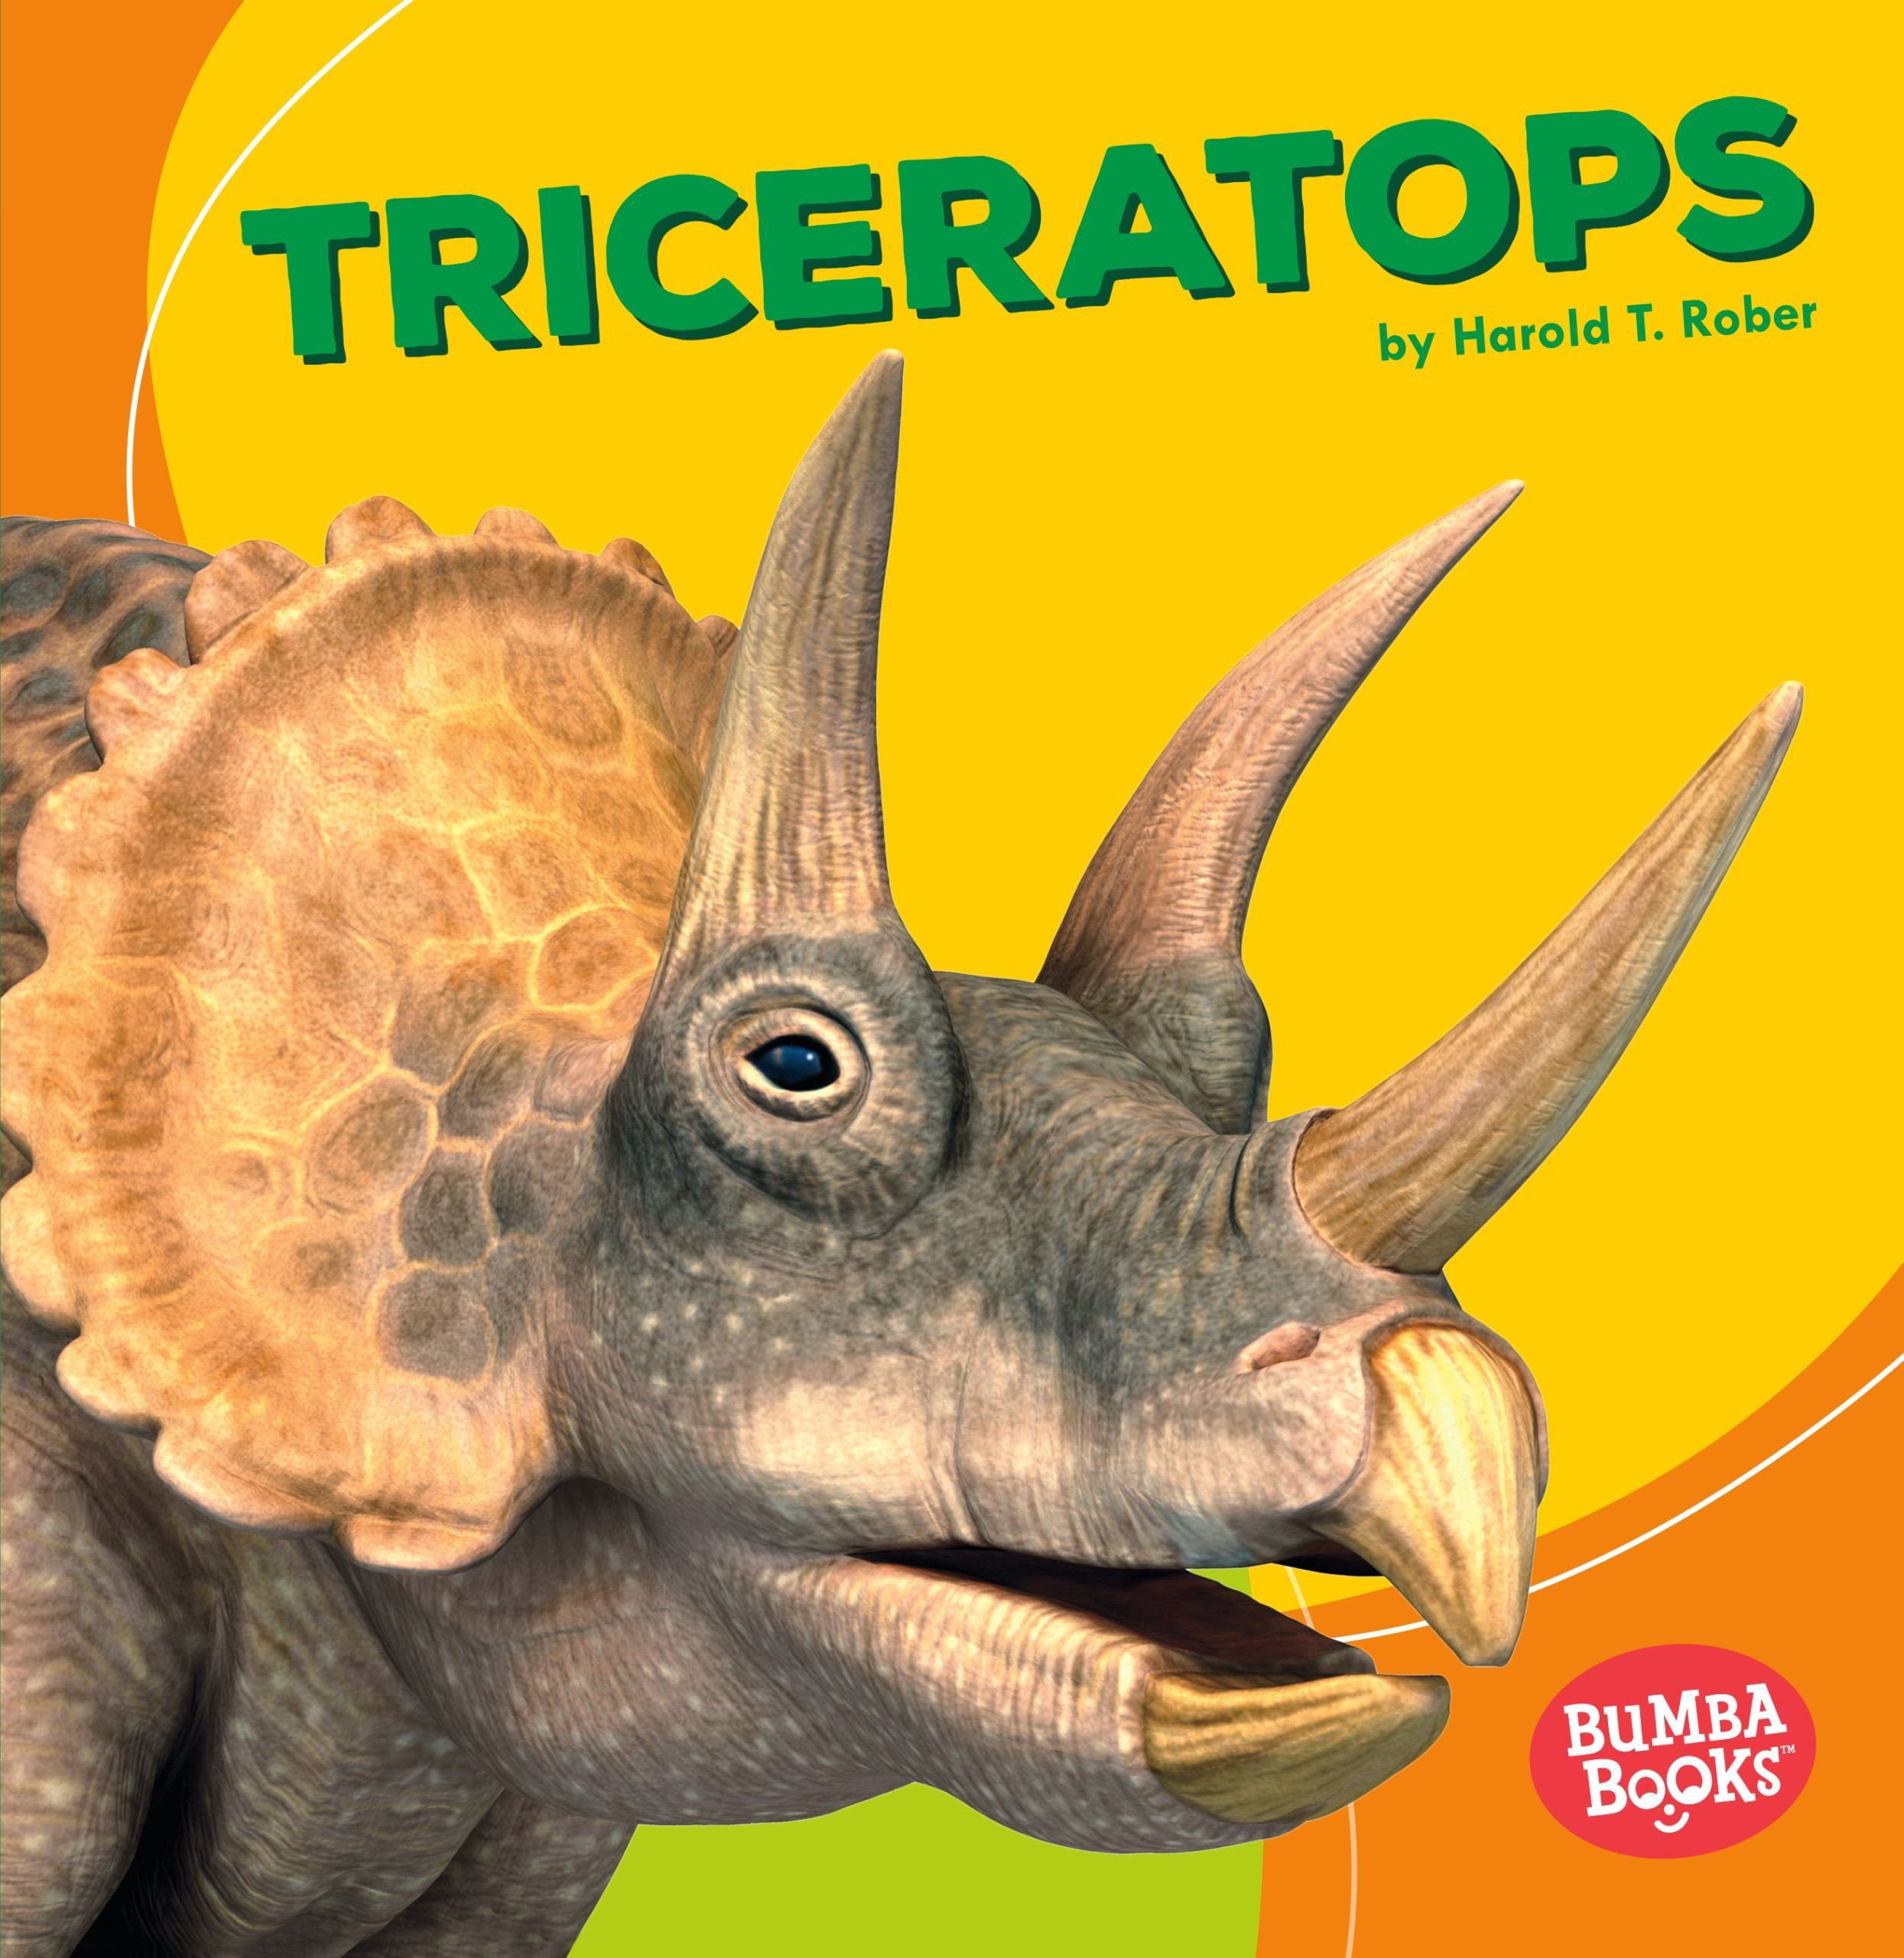 triceratops-bumba-books-dinosaurs-and-prehistoric-beasts